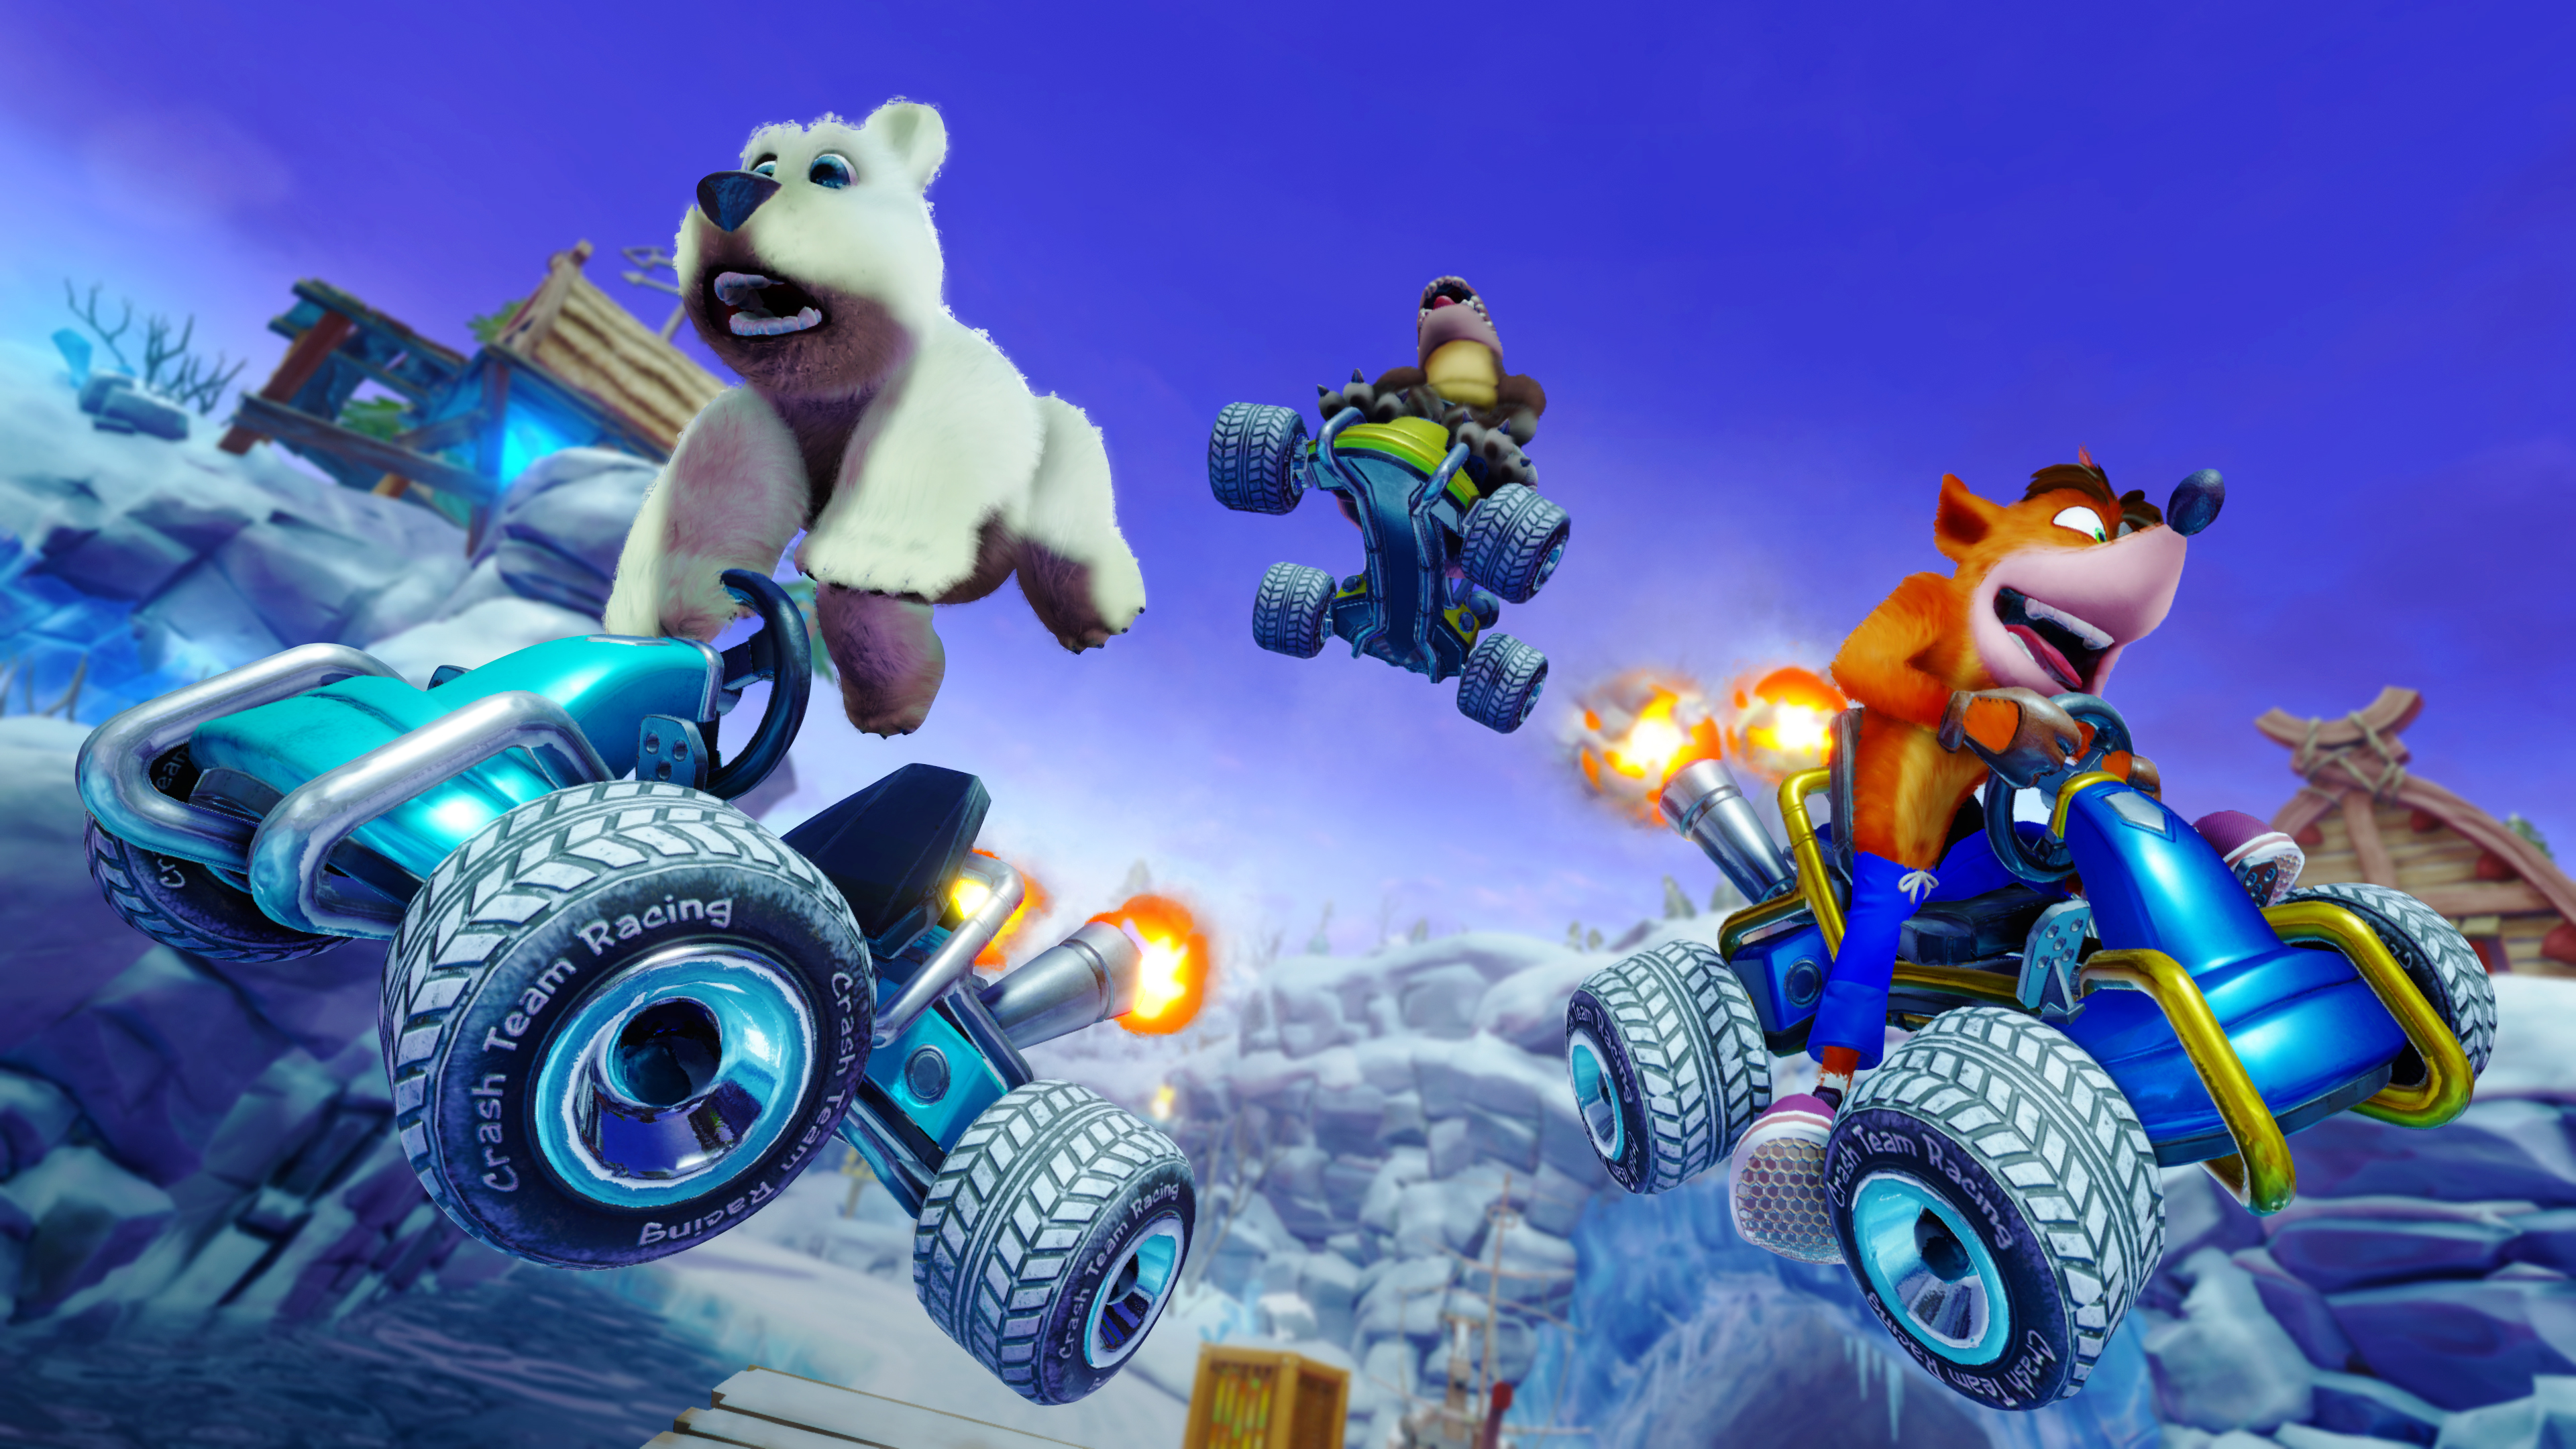 cac266cec Crash Team Racing tips: 11 hints at how to be the best at Nitro Fueled |  GamesRadar+